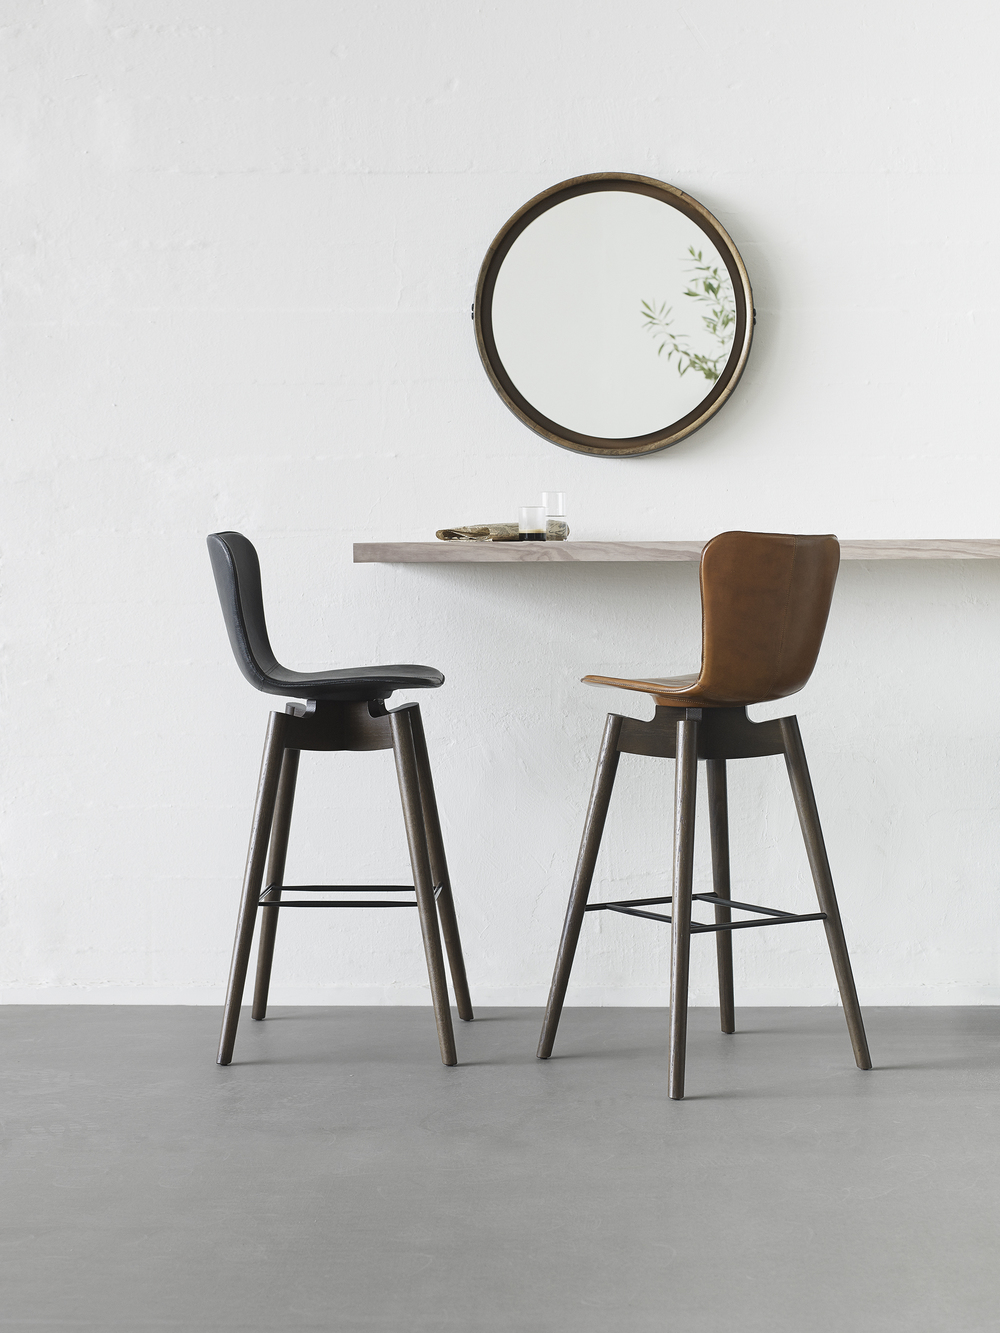 Mater Design Shell Lounge Chair and Shell Barstool from Mater Design